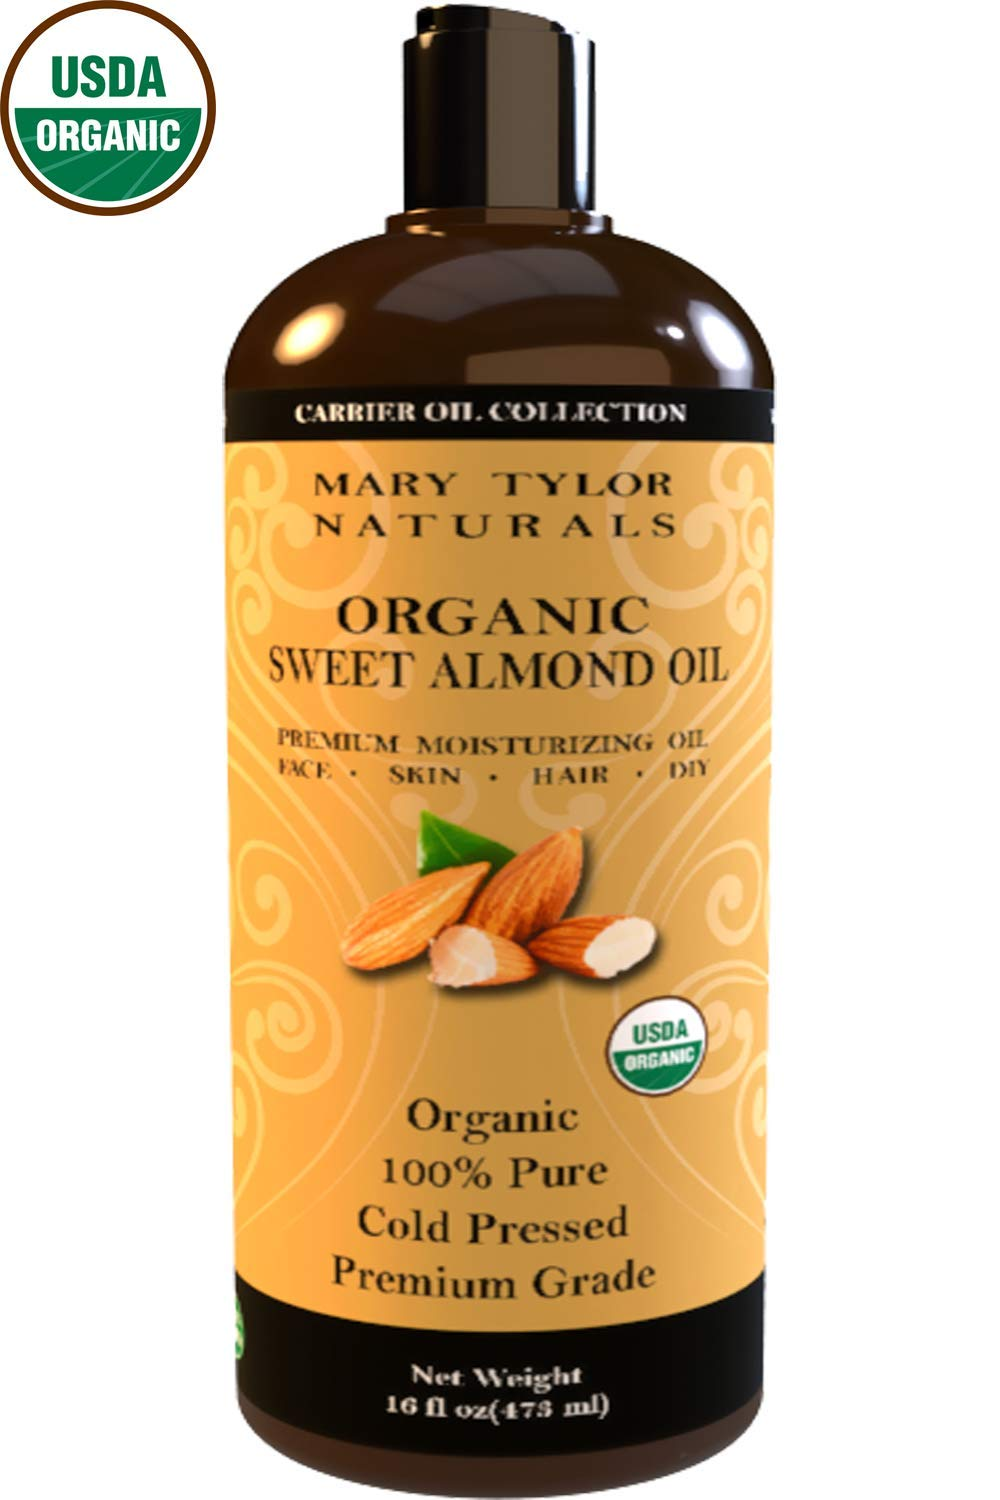 Organic Sweet Almond Oil (16 oz) USDA Organic, Cold Pressed, Hexane Free, 100% Pure, Amazing Moisturizer for Skin Best Carrier oil for all Your DIY Projects Great as Baby Oil by Mary Tylor Naturals